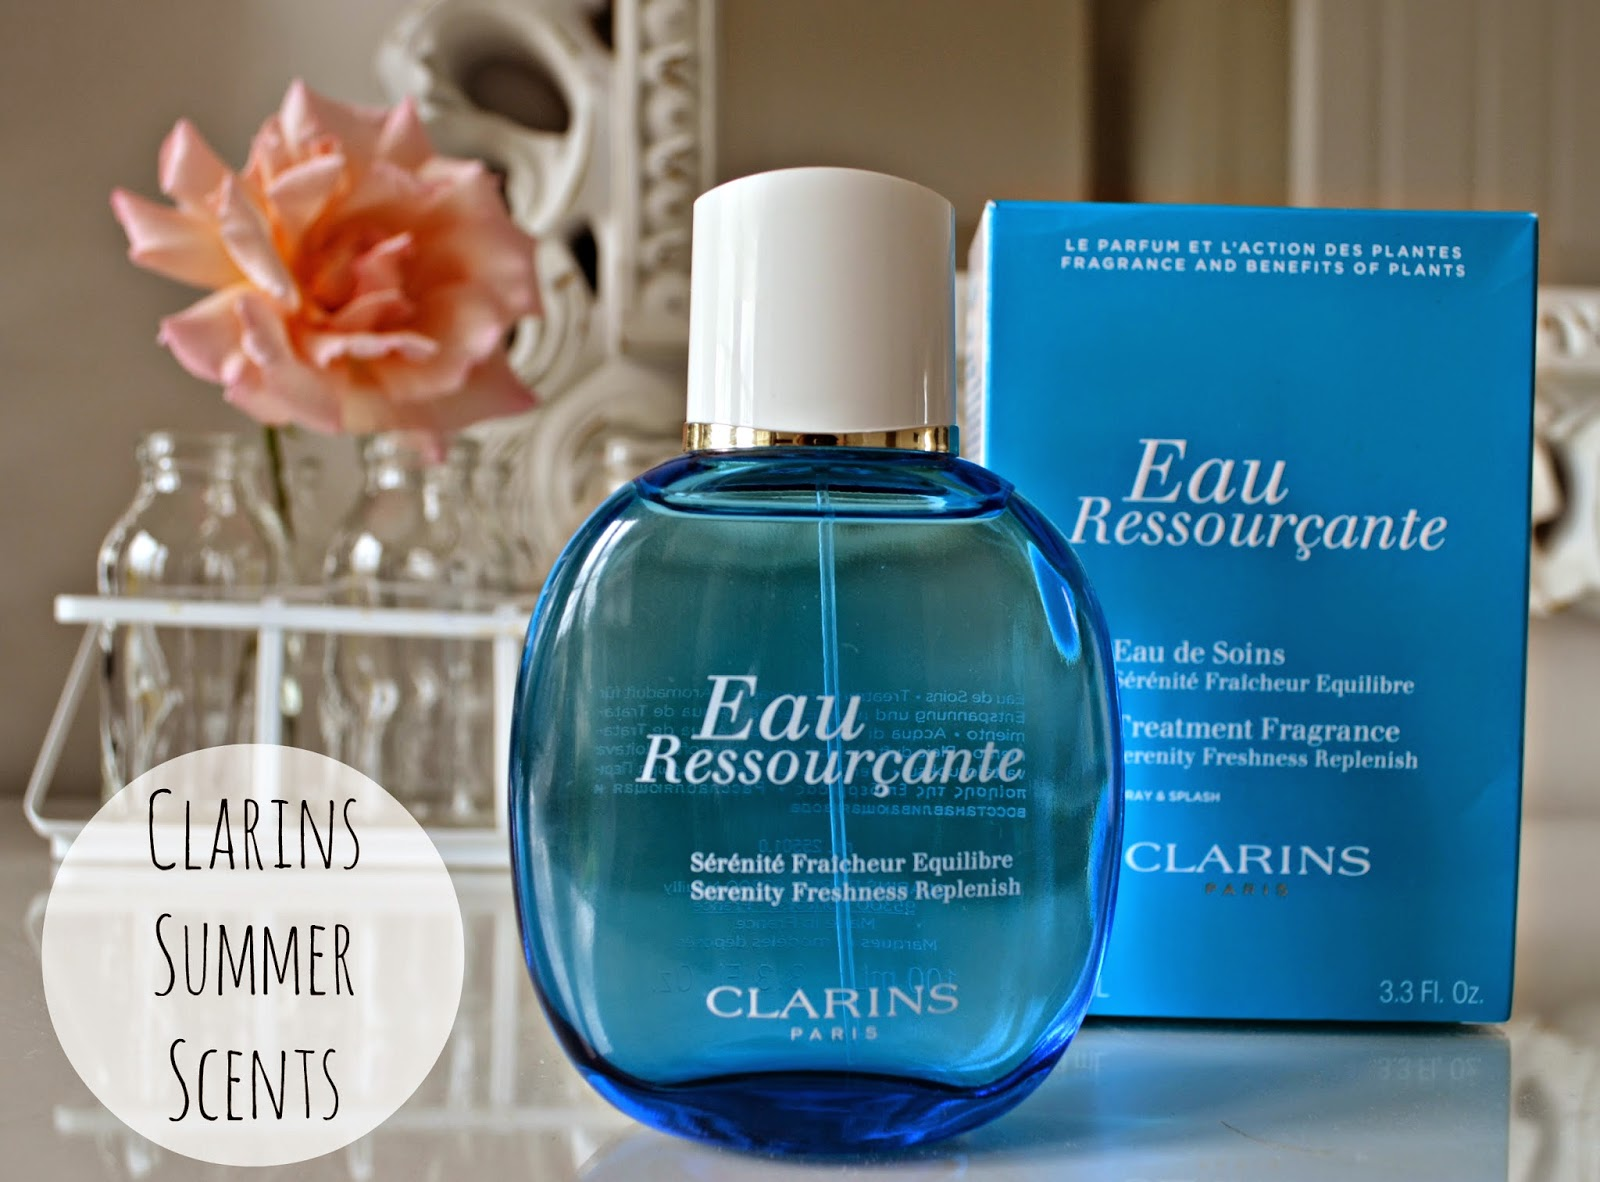 Clarins summer scents